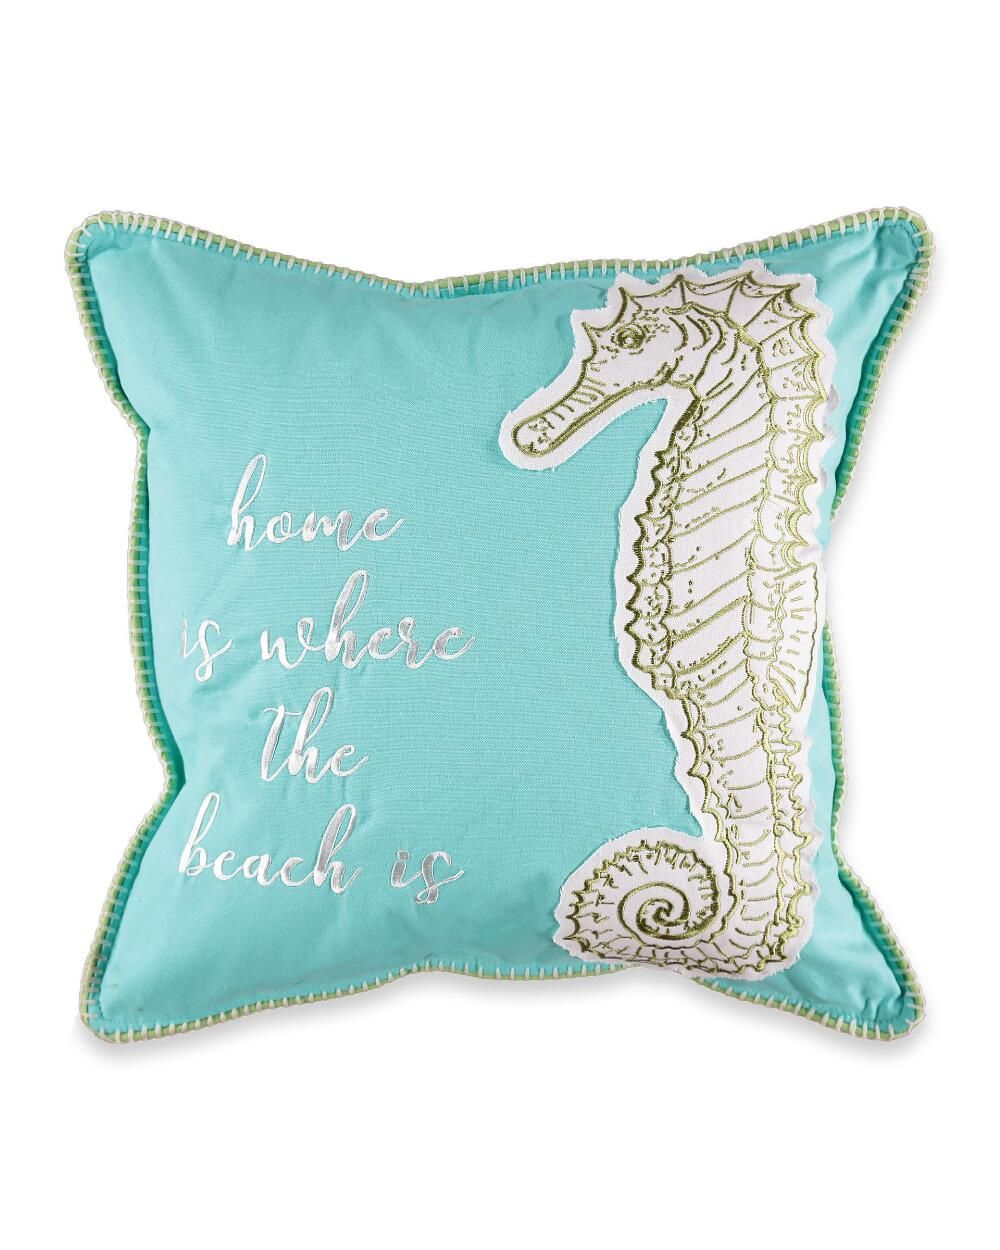 Dover Home Is Where The Beach Is Decorative Pillow Decorative